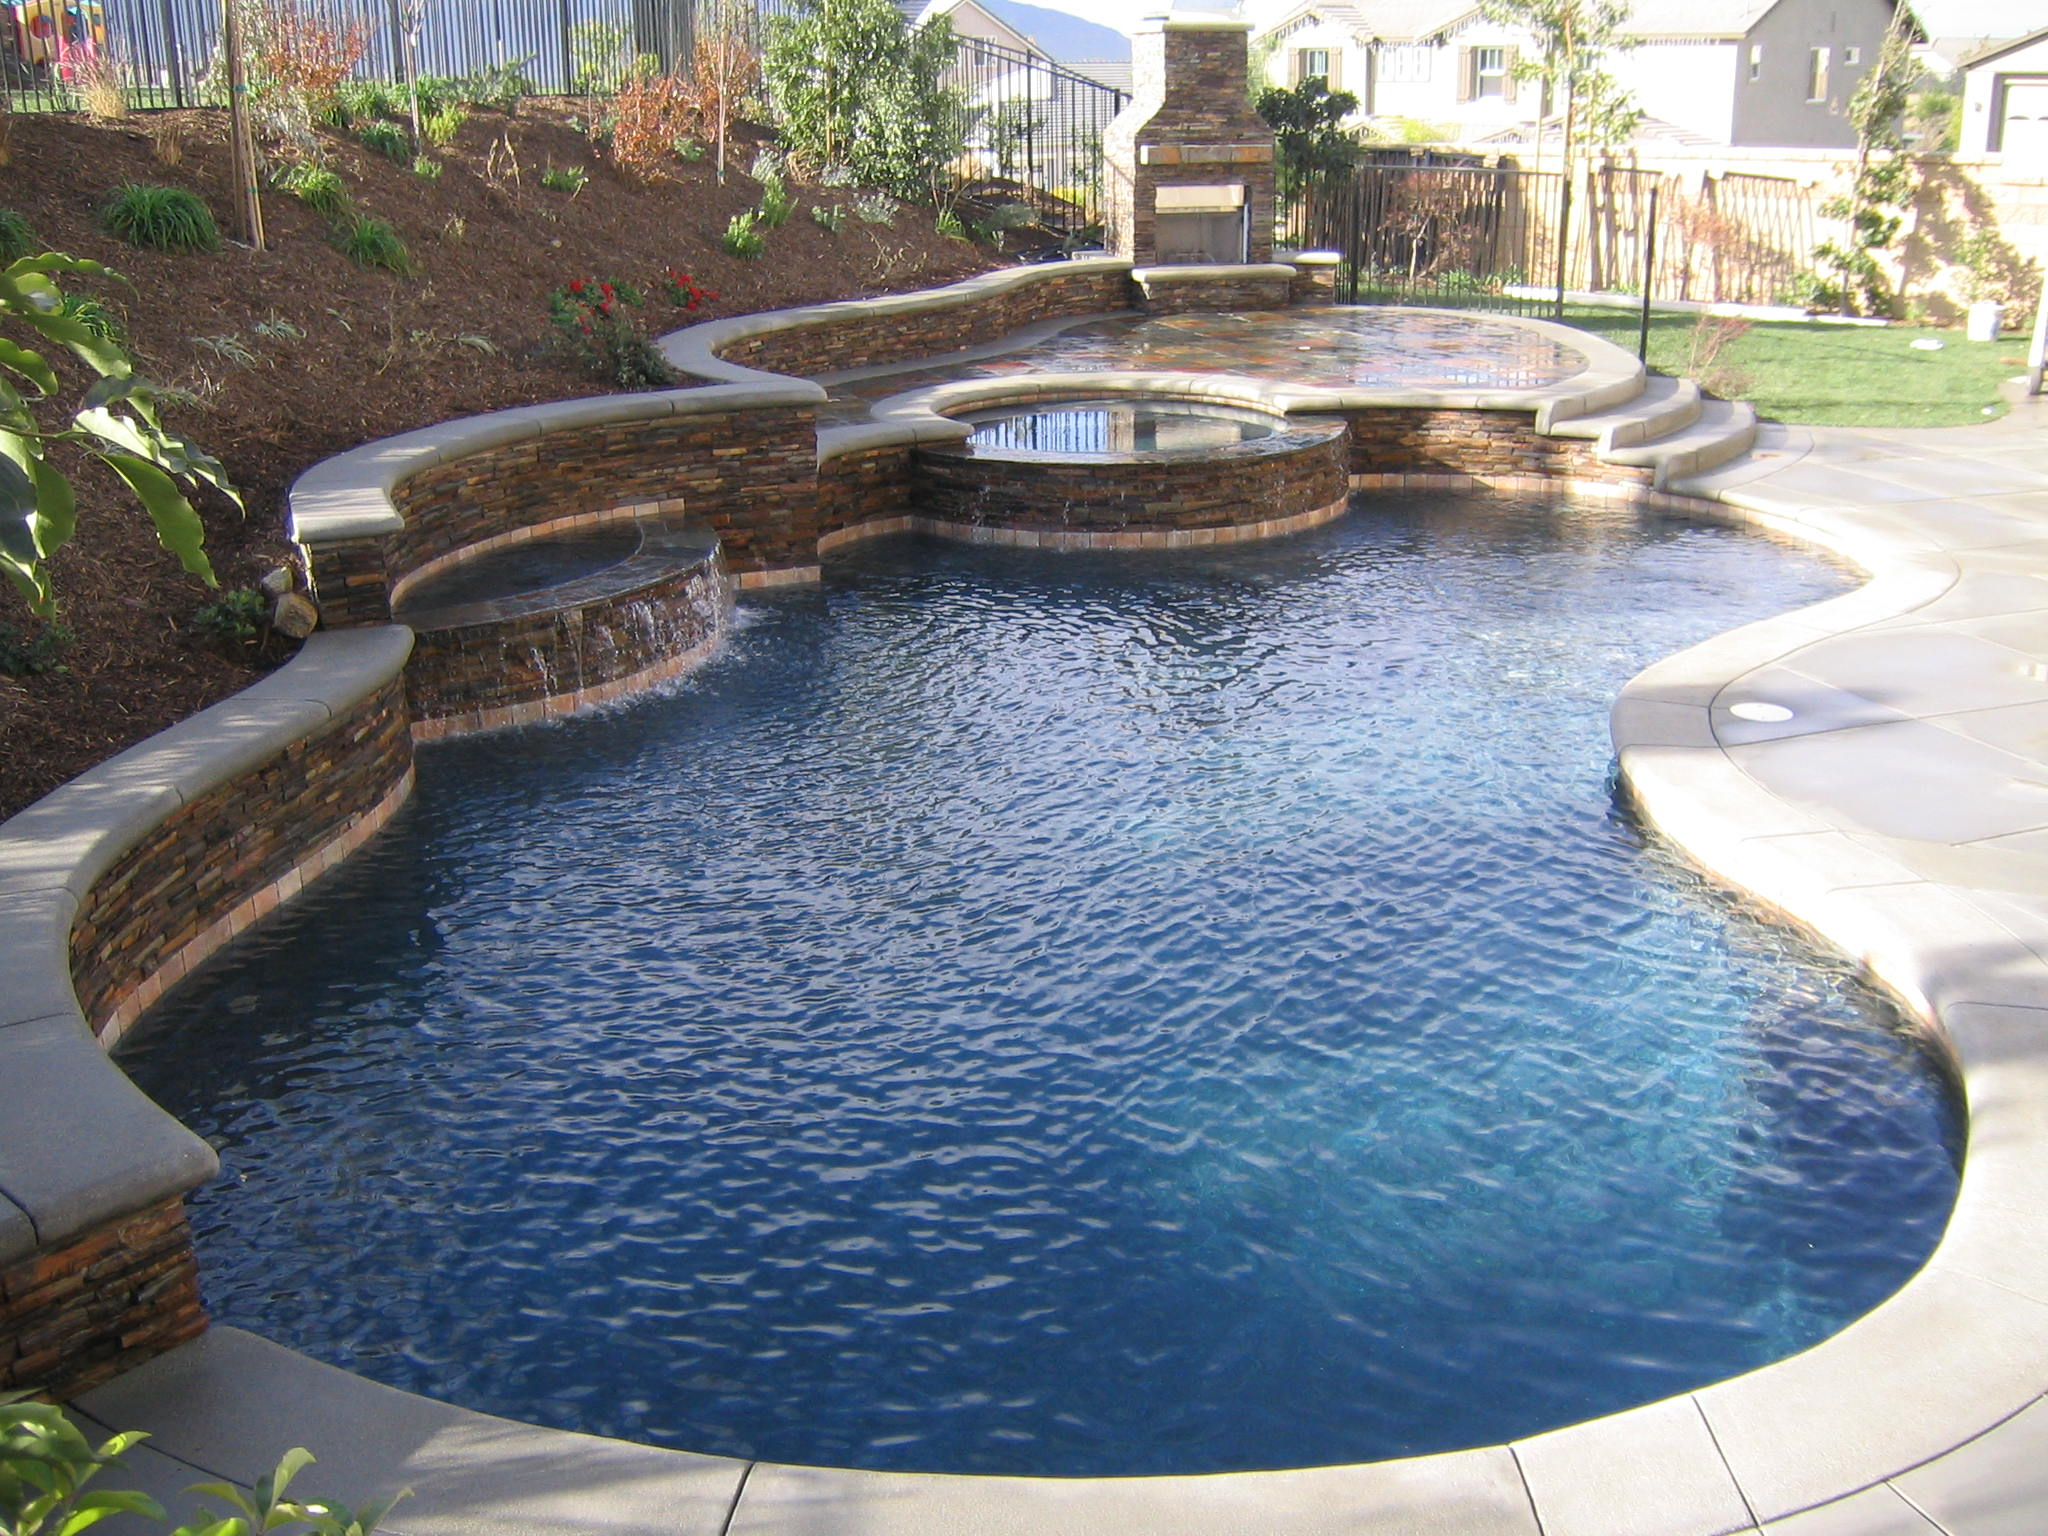 Pool design for small yards homesfeed for Pool designs for small yards